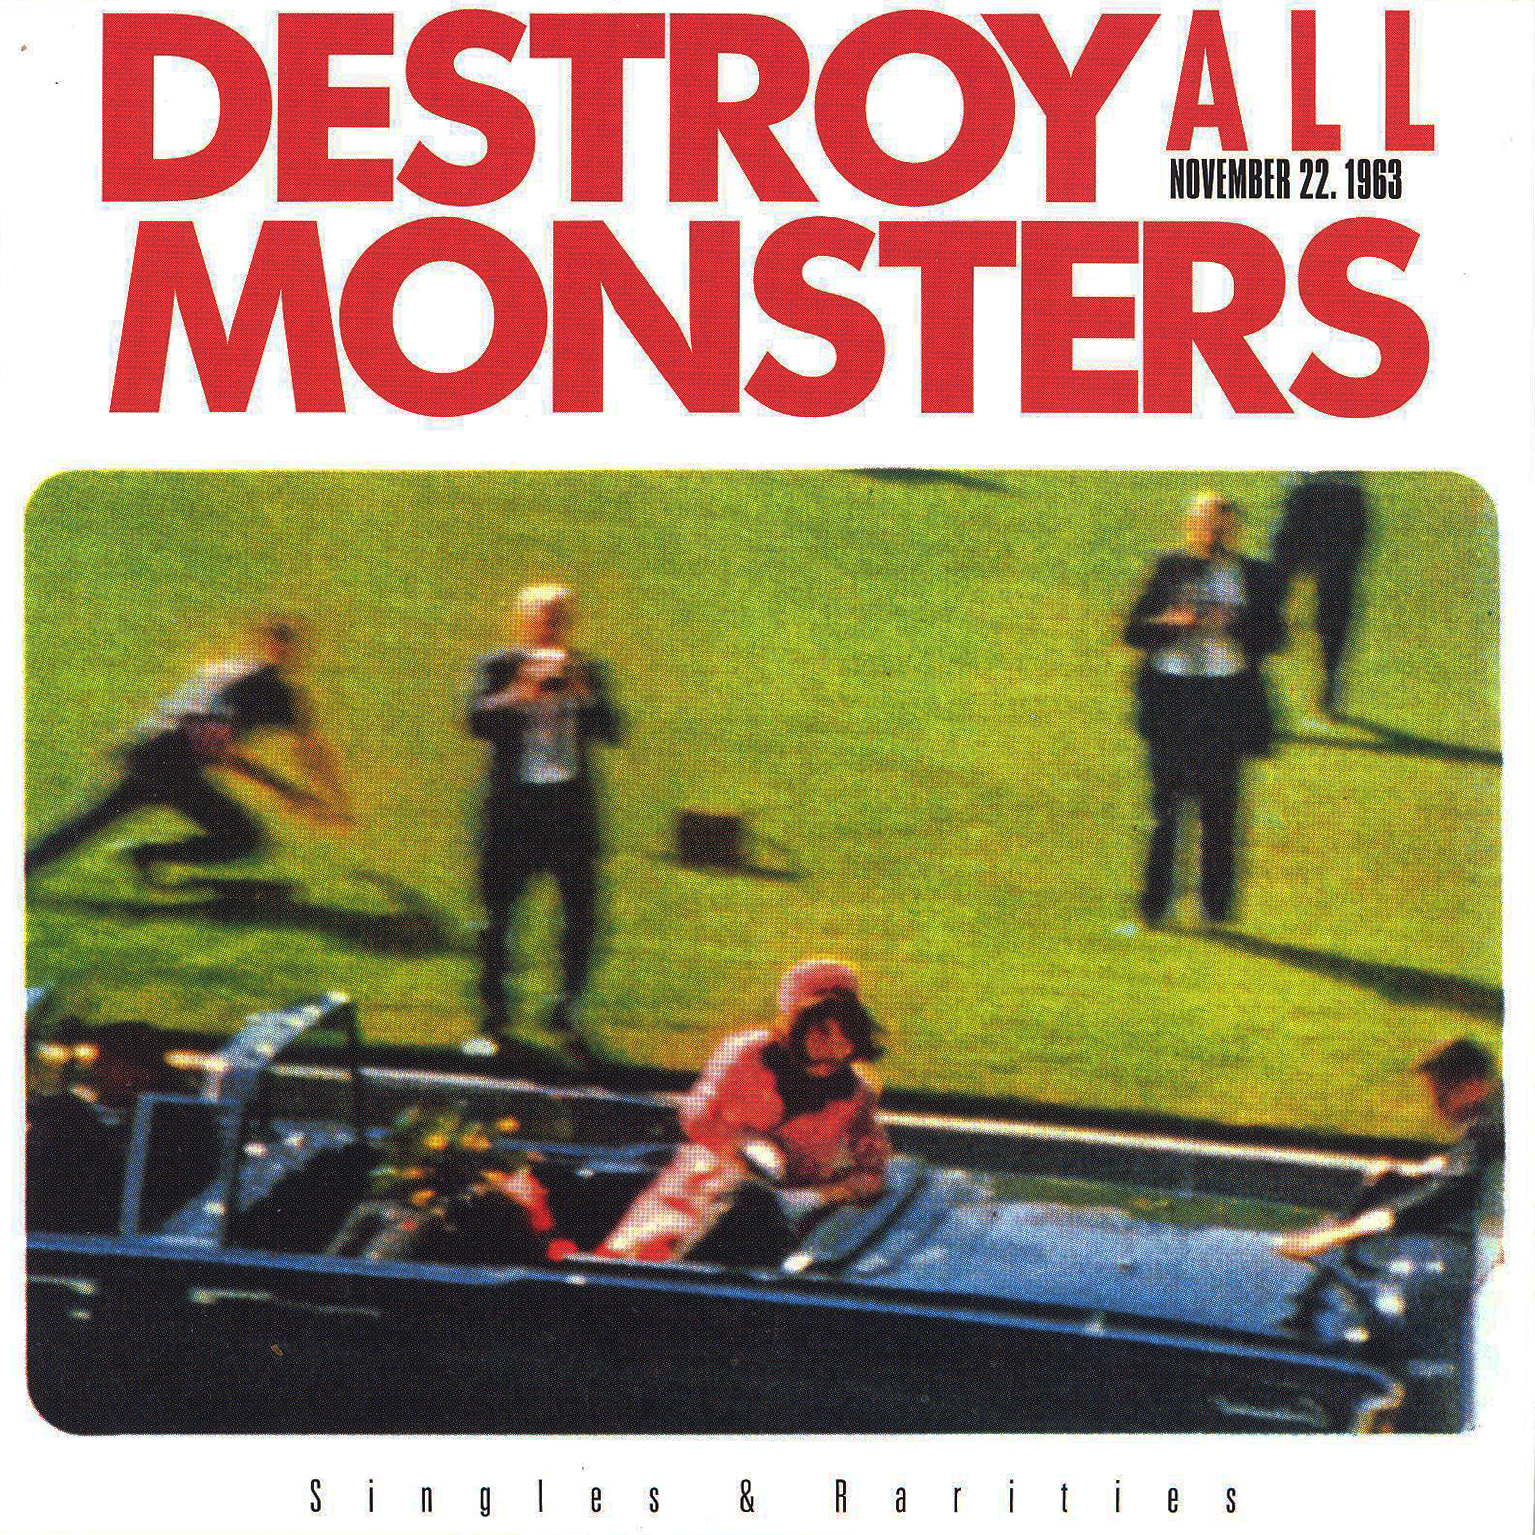 Japan (Papersleeve) Mini LP CDs : Destroy All Monsters ...